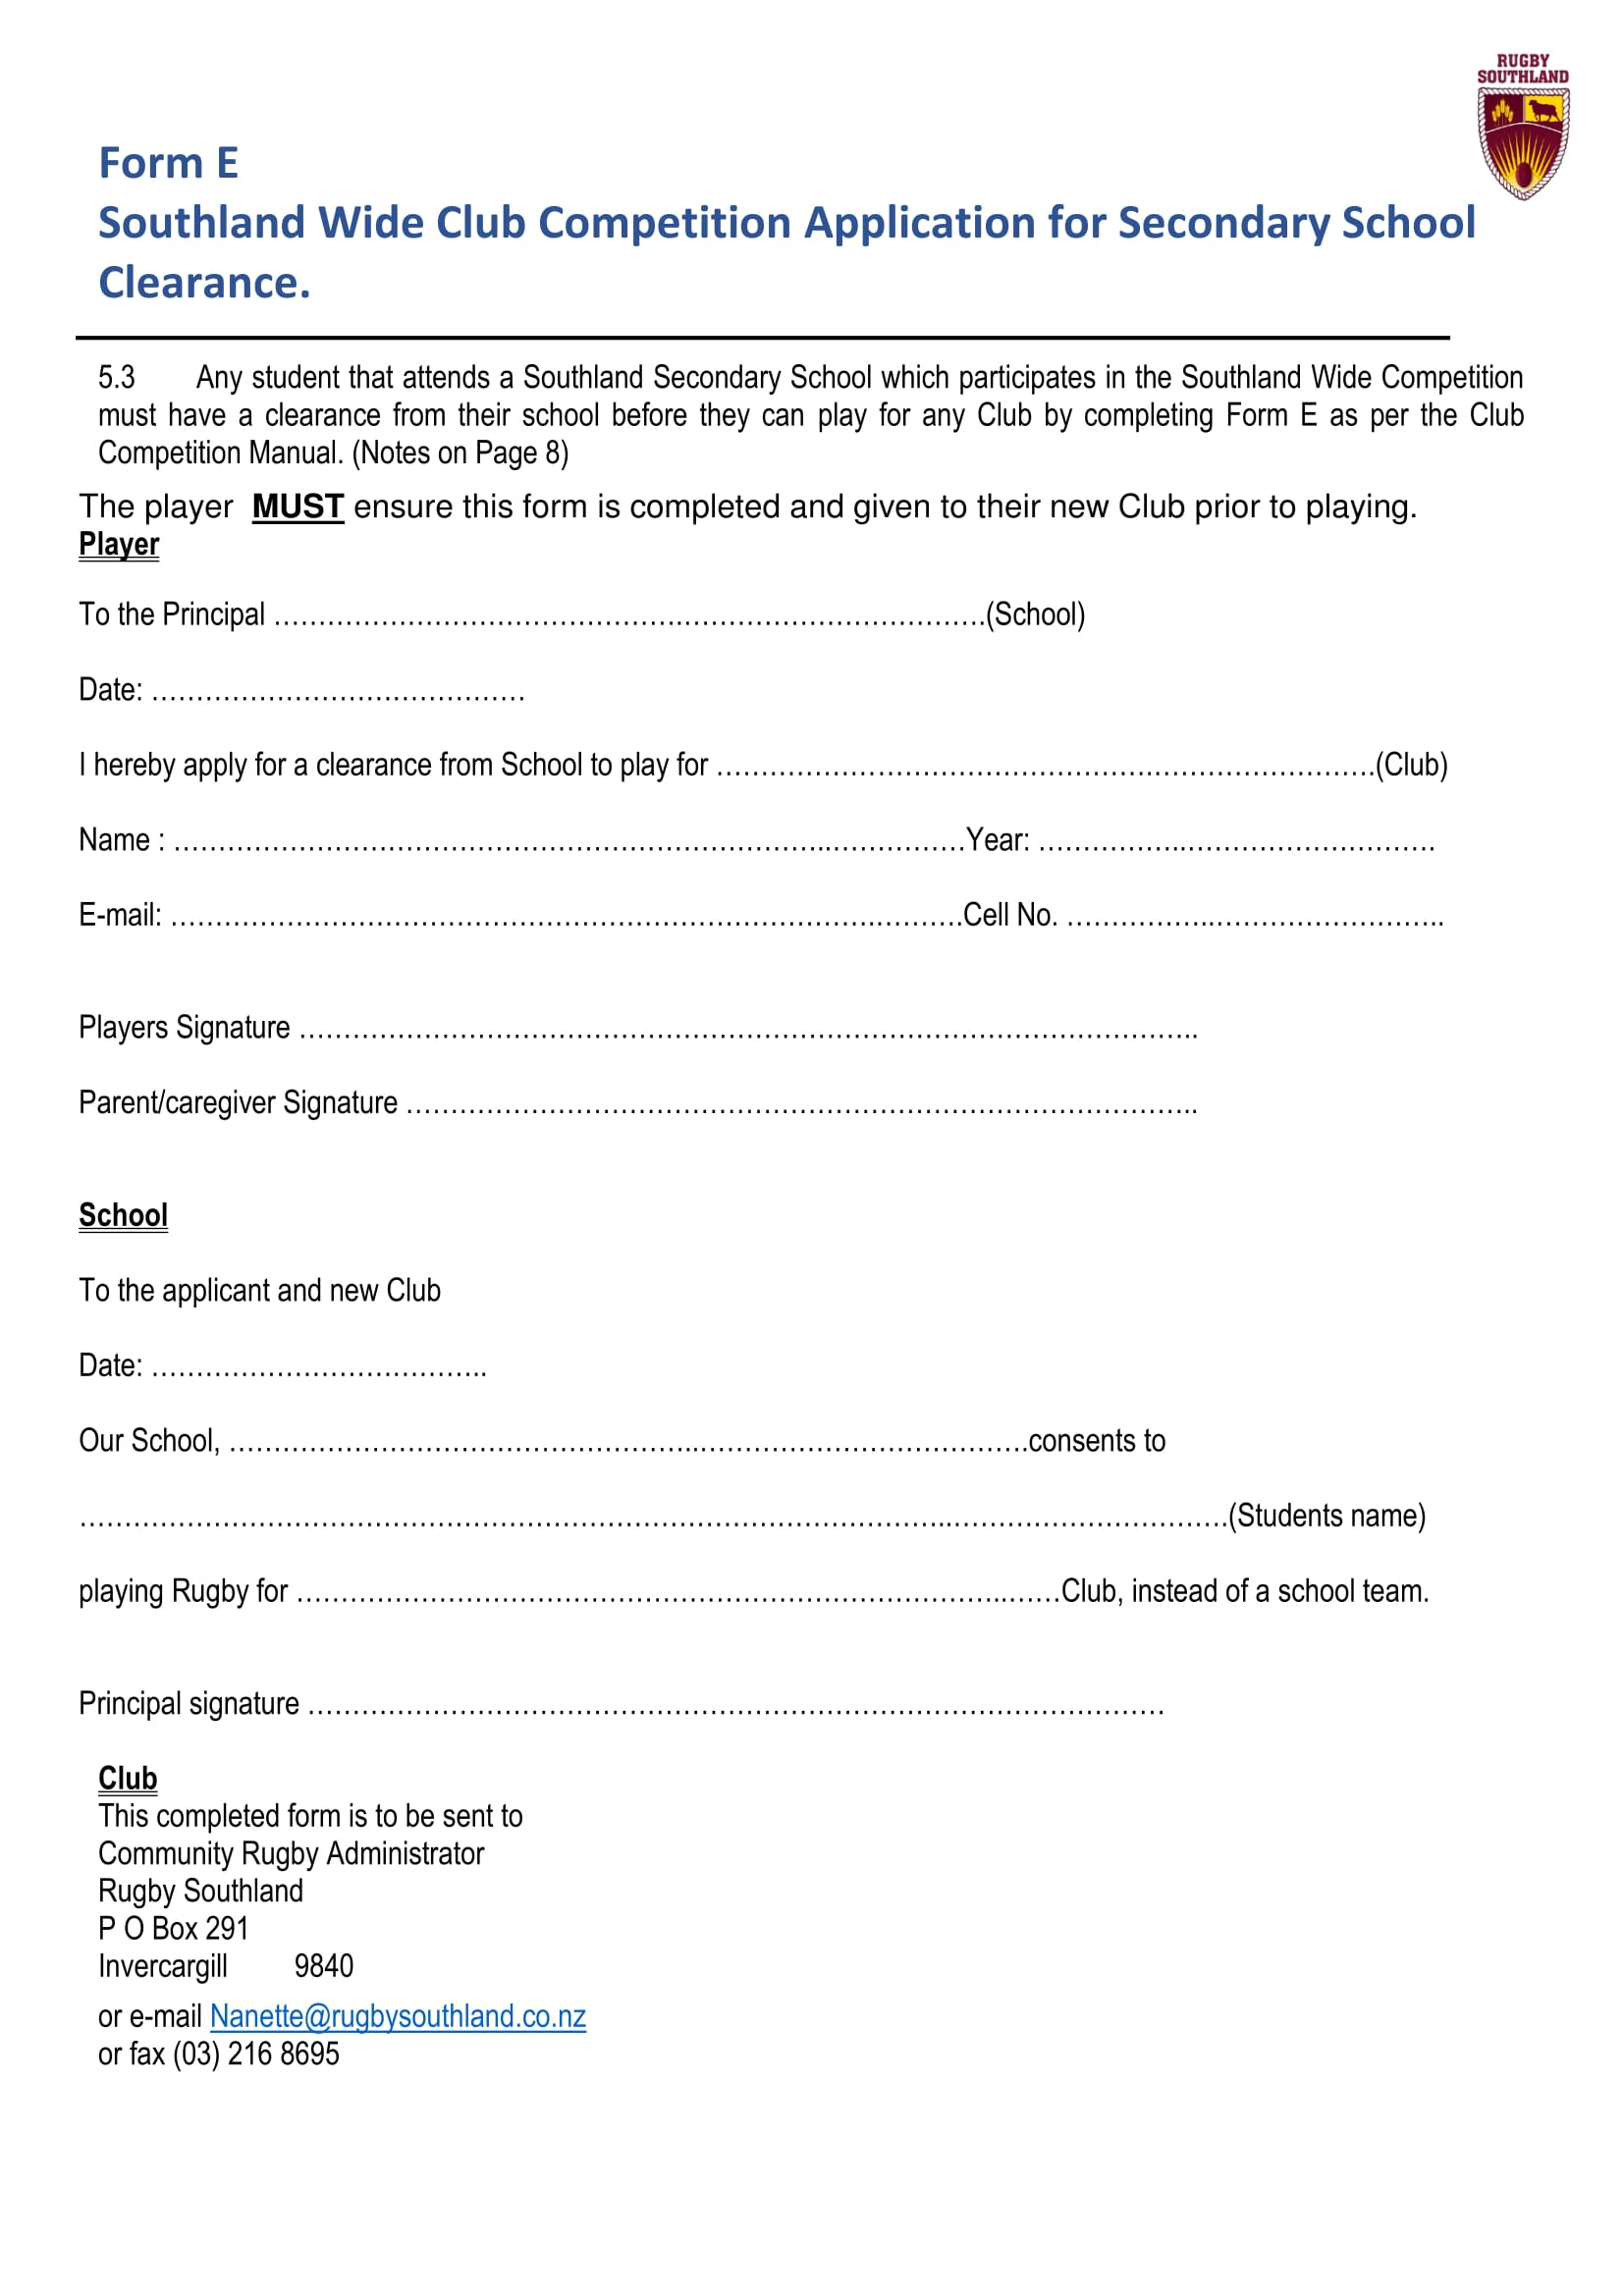 secondary school clearance application form 1